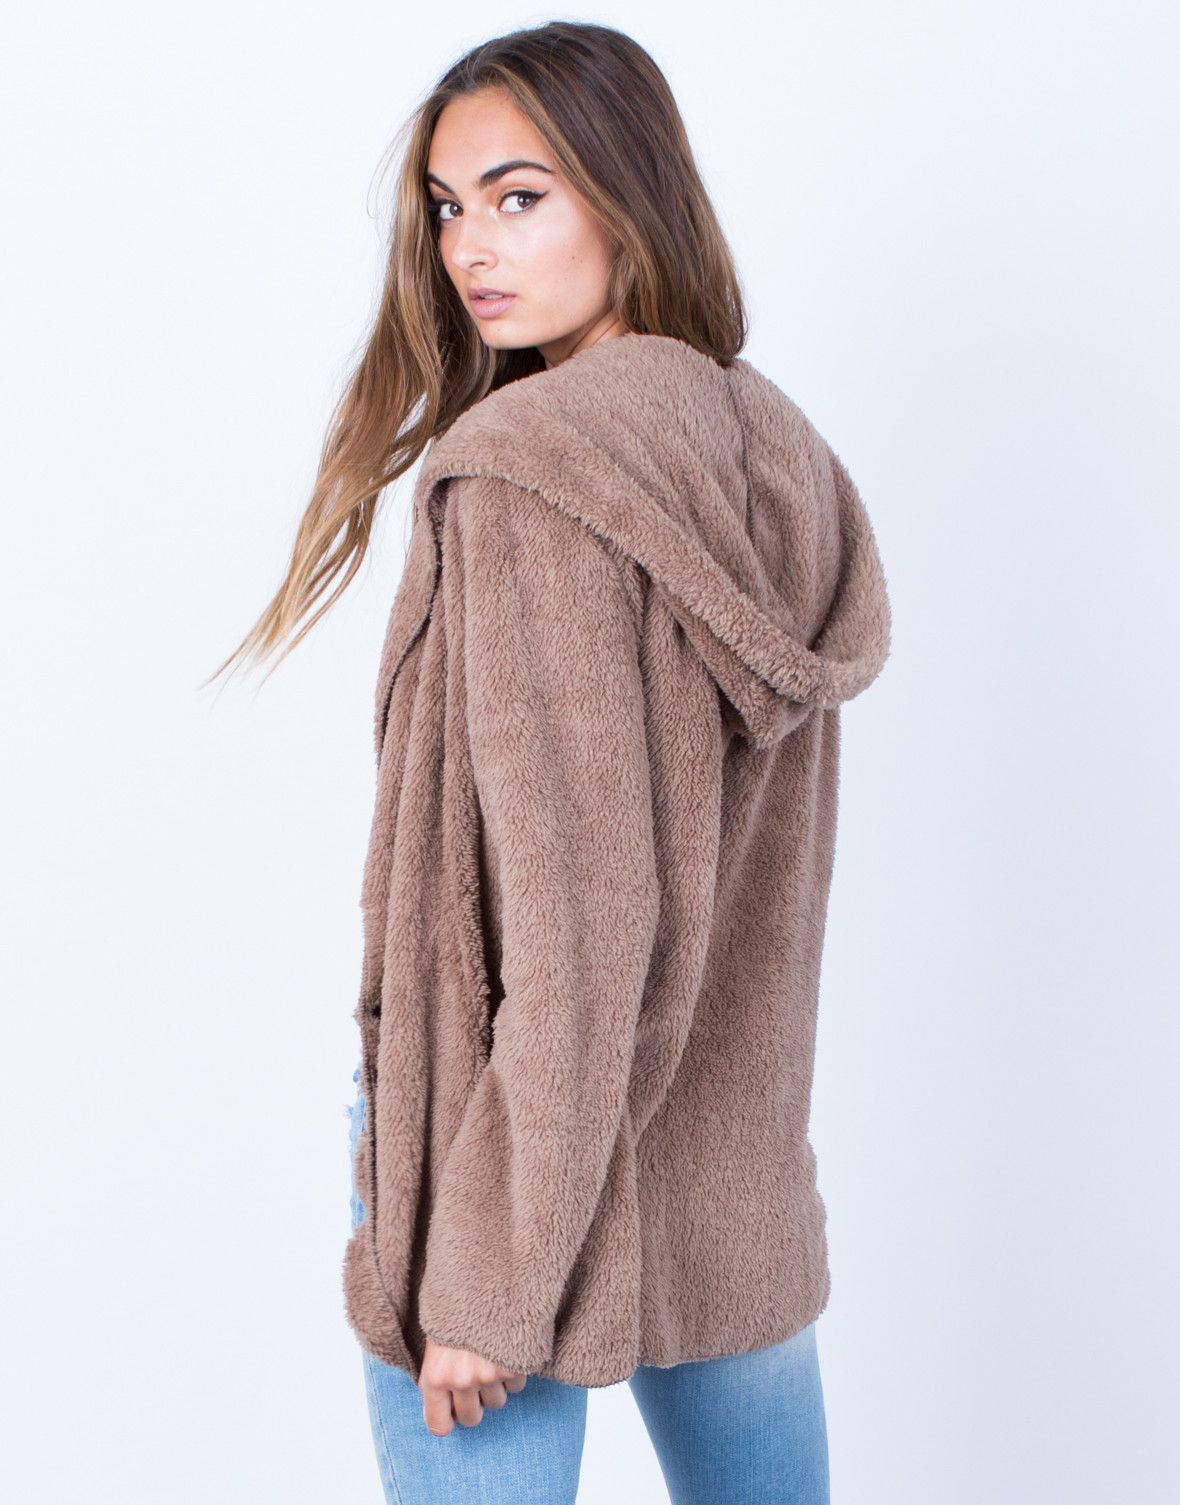 Soft Cozy Hooded Jacket | Cozy, Fur jacket and Holidays